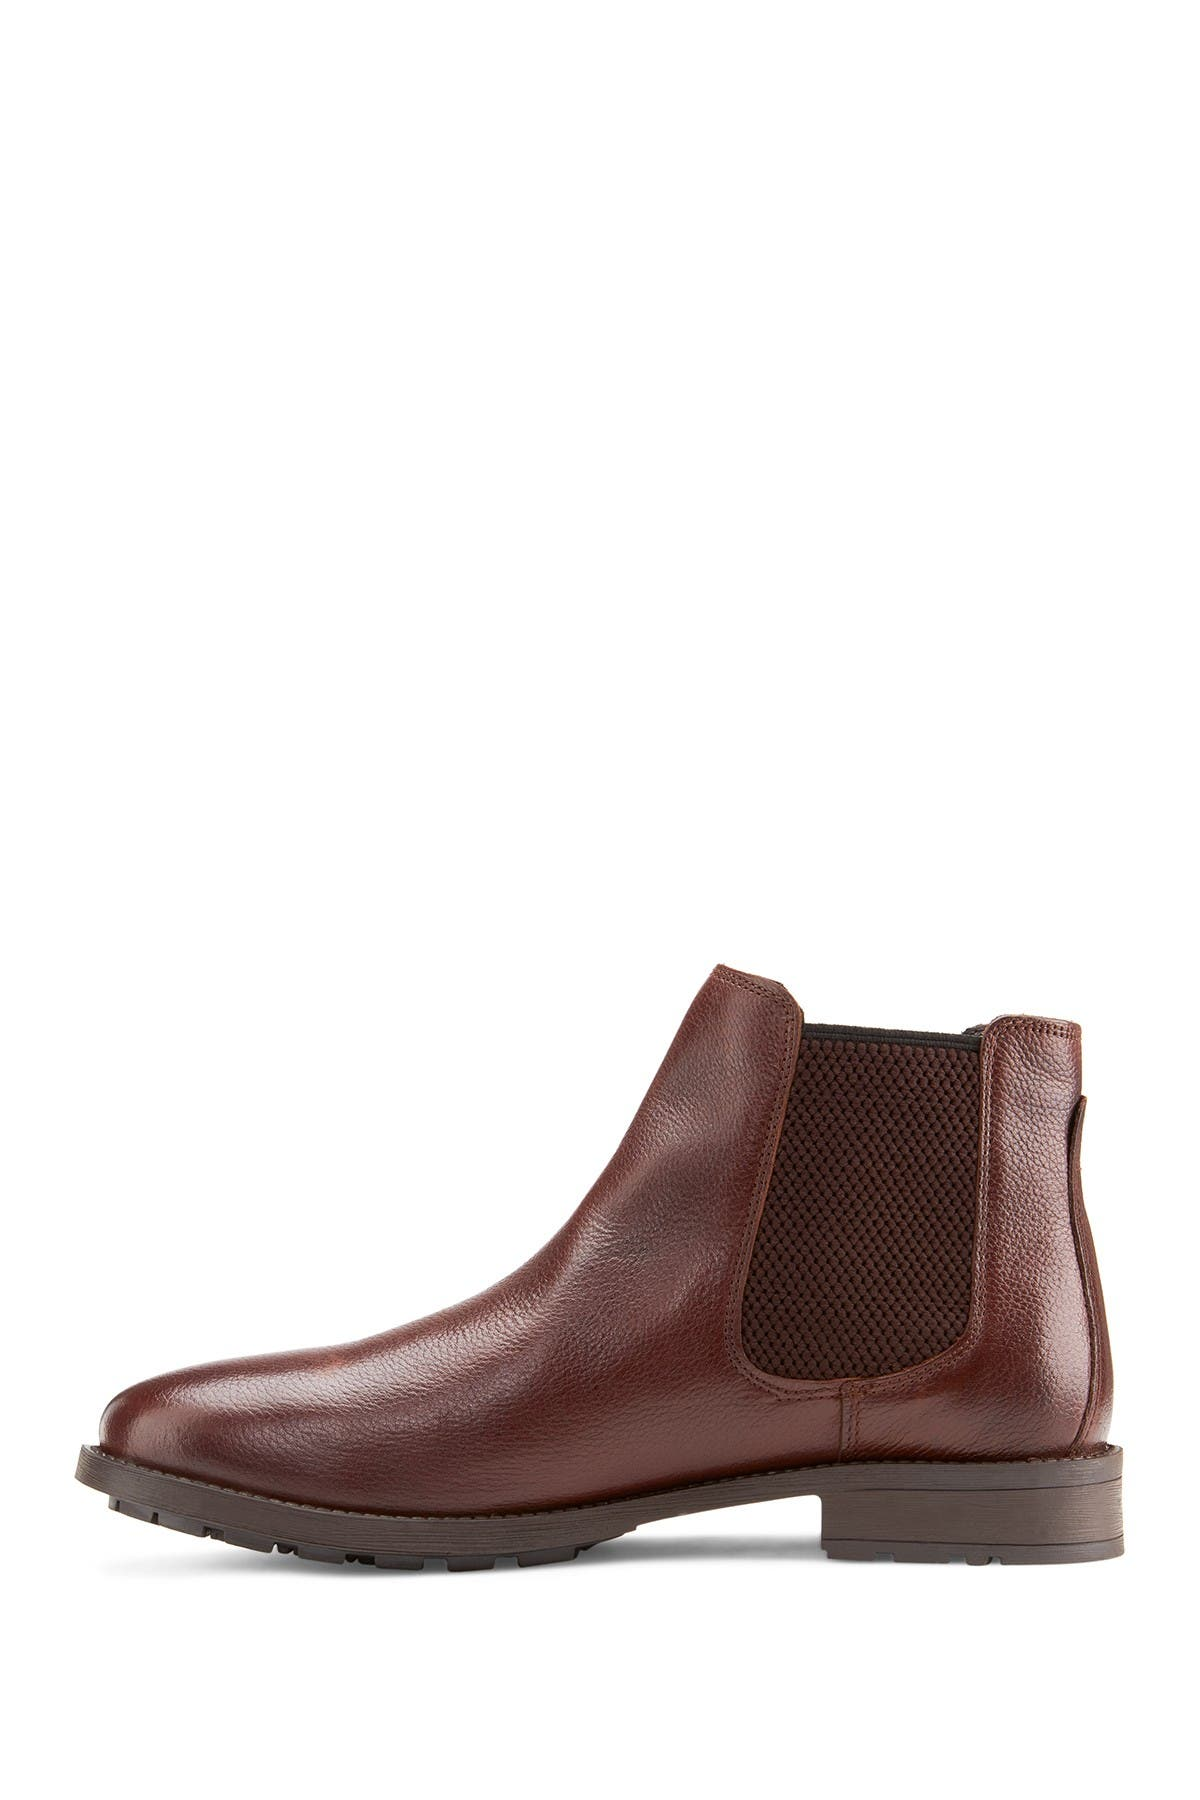 Reserved Footwear | Leather Chelsea